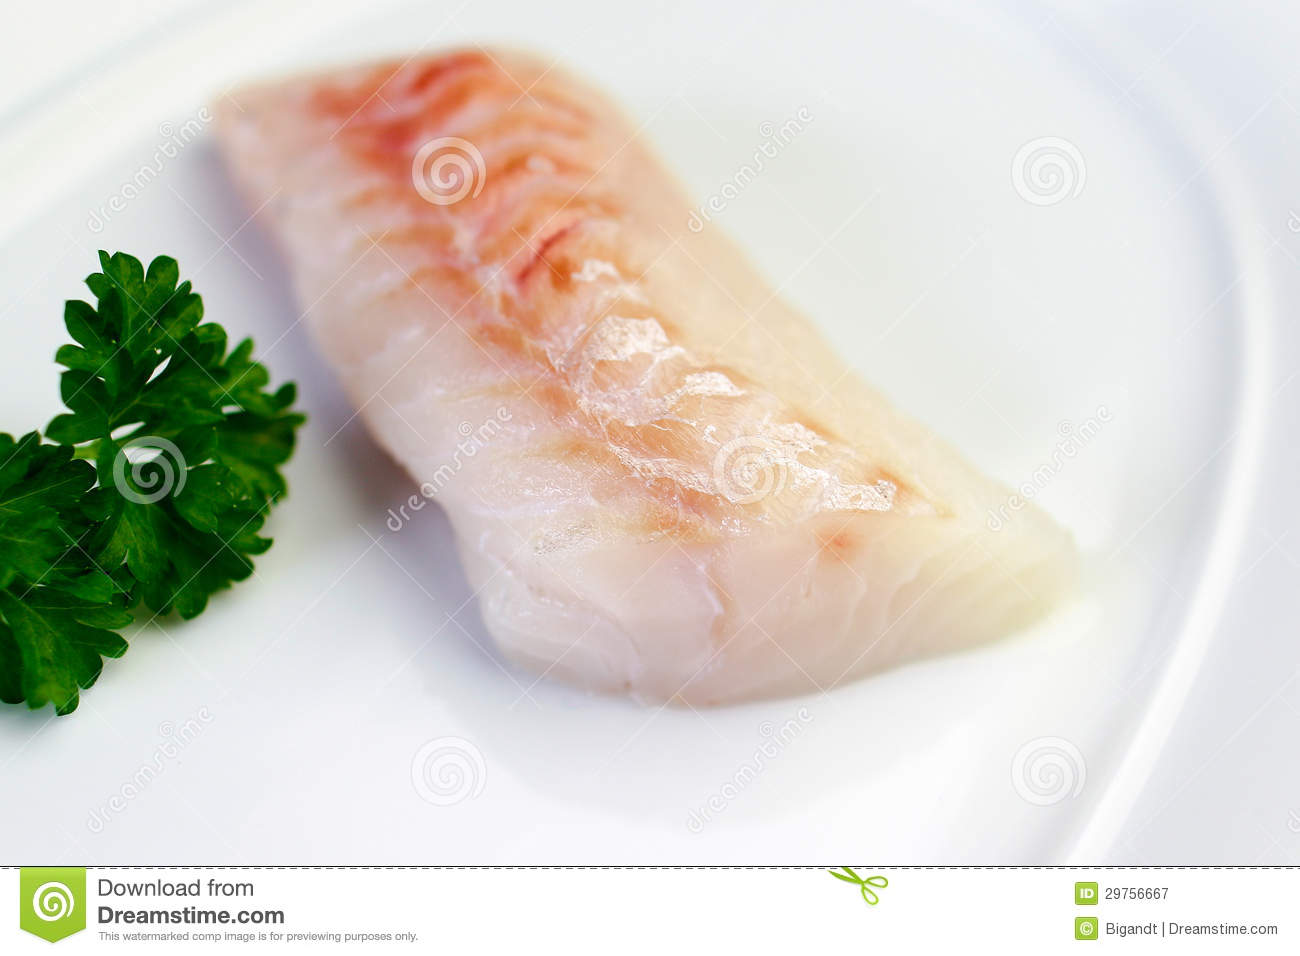 White fish ready for cooking royalty free stock for Cooking white fish